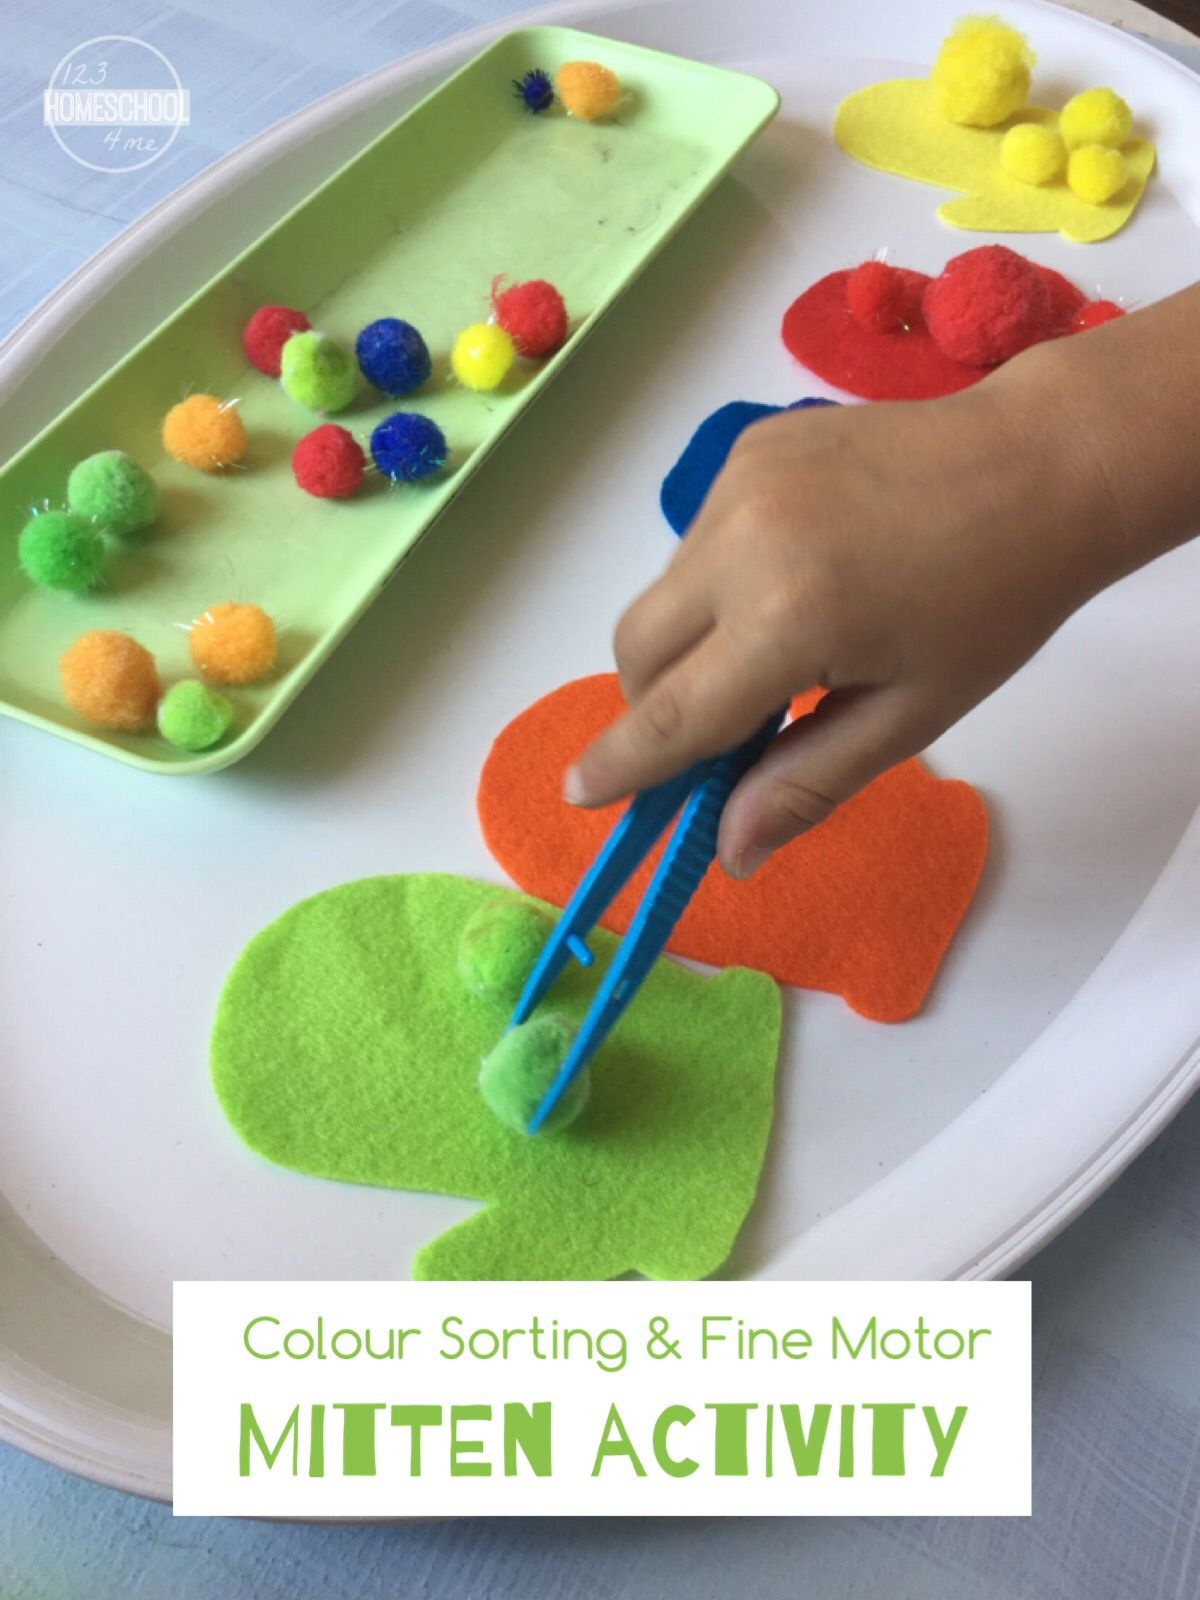 Color Sorting Mitten Activity | Mittens, Pre-school and Gaming